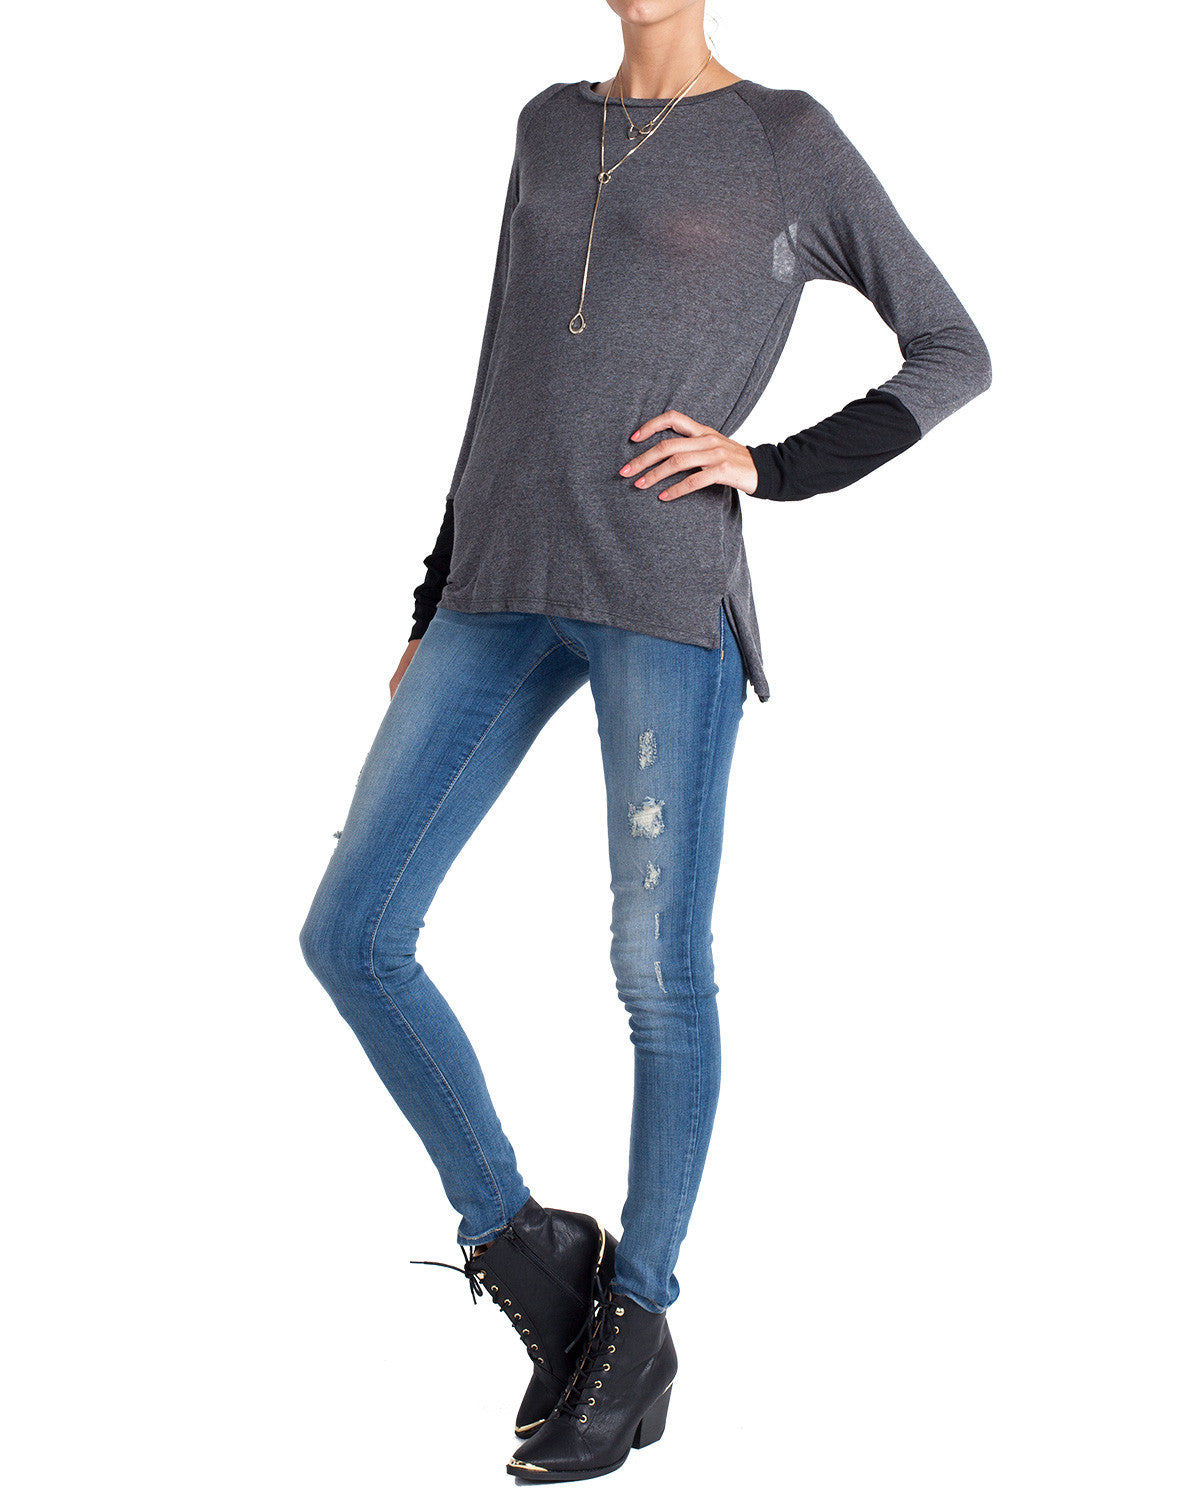 Flying Monkey - Light Distressed Denim Skinnies